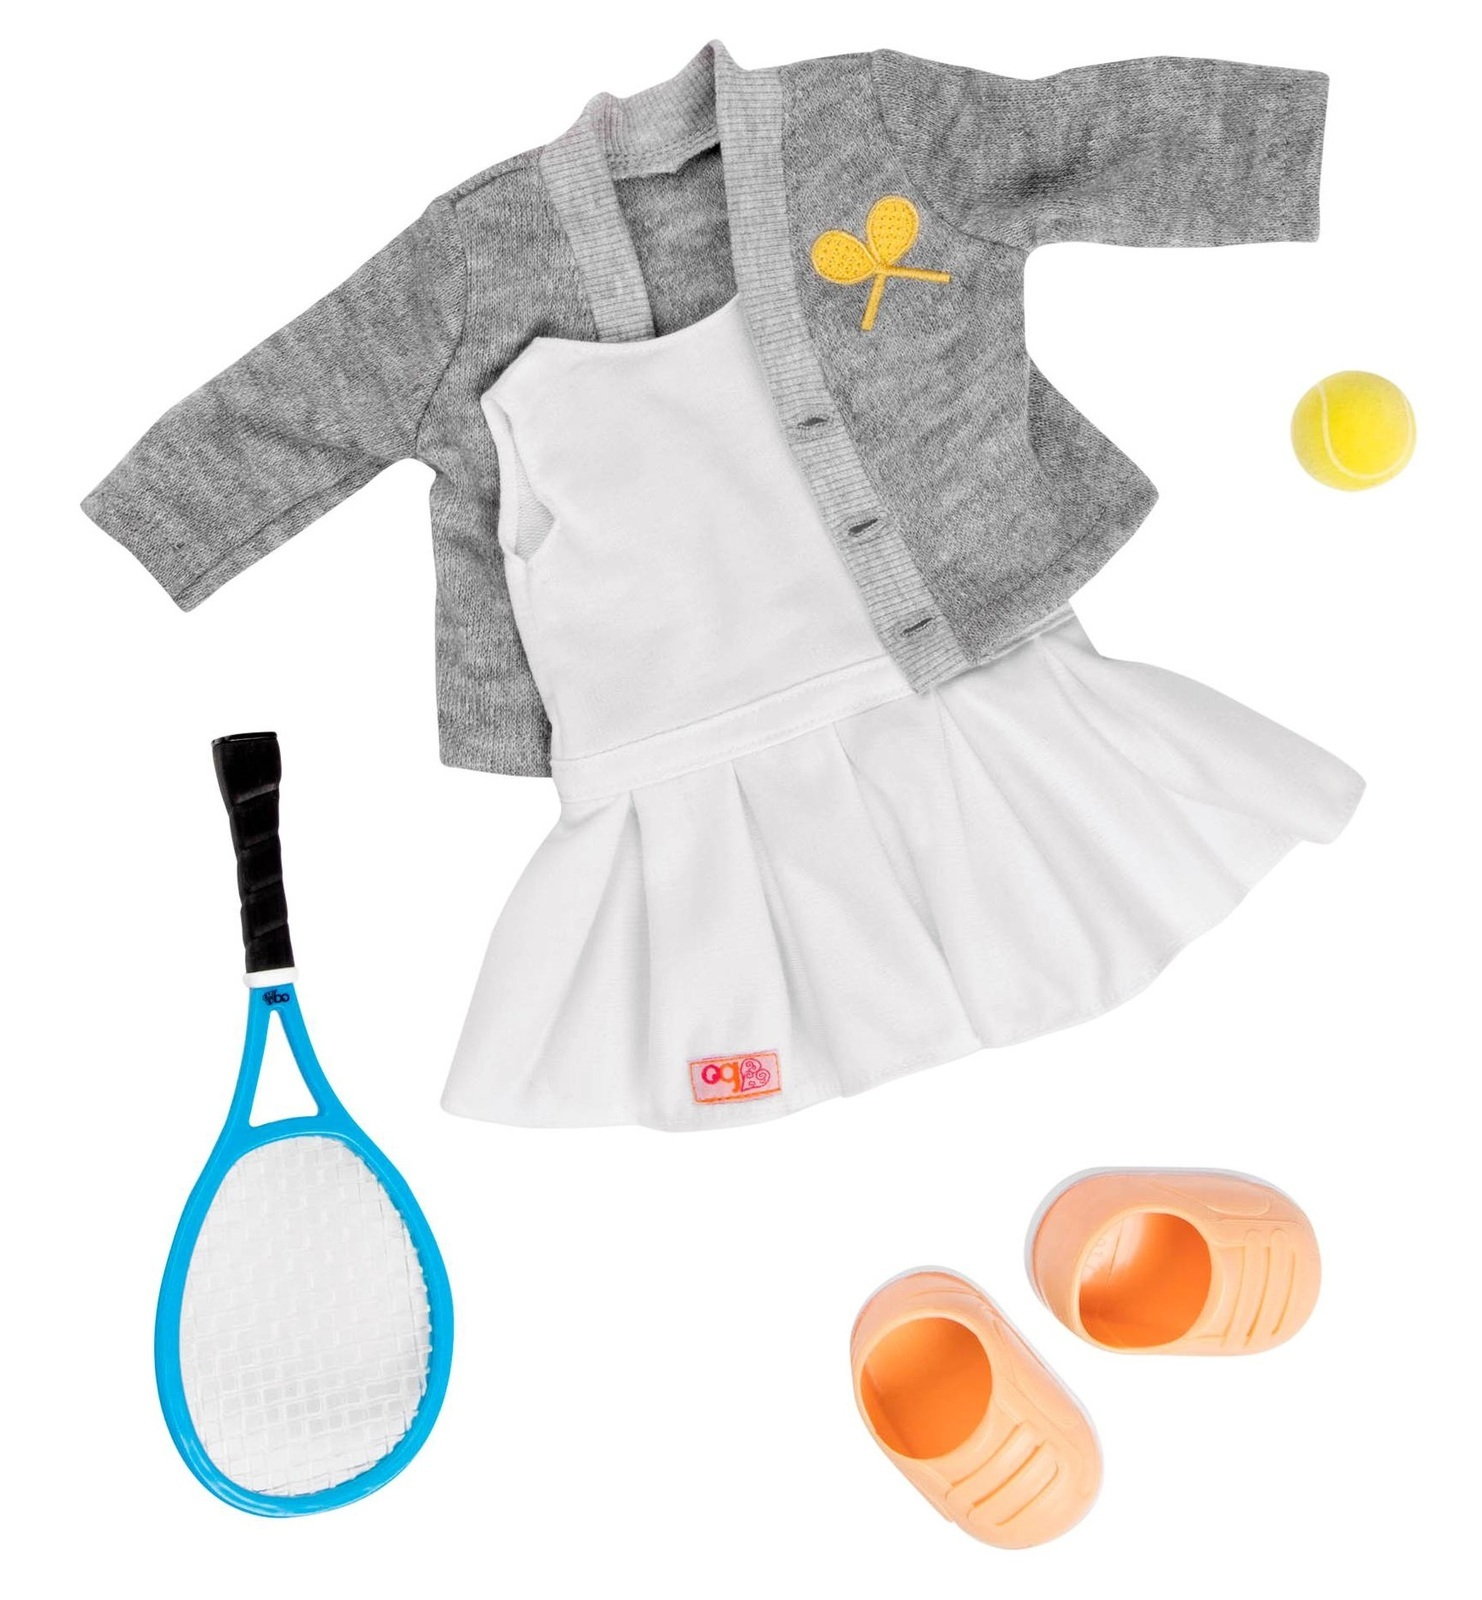 Our Generation: Regular Outfit - Retro Tennis Outfit image